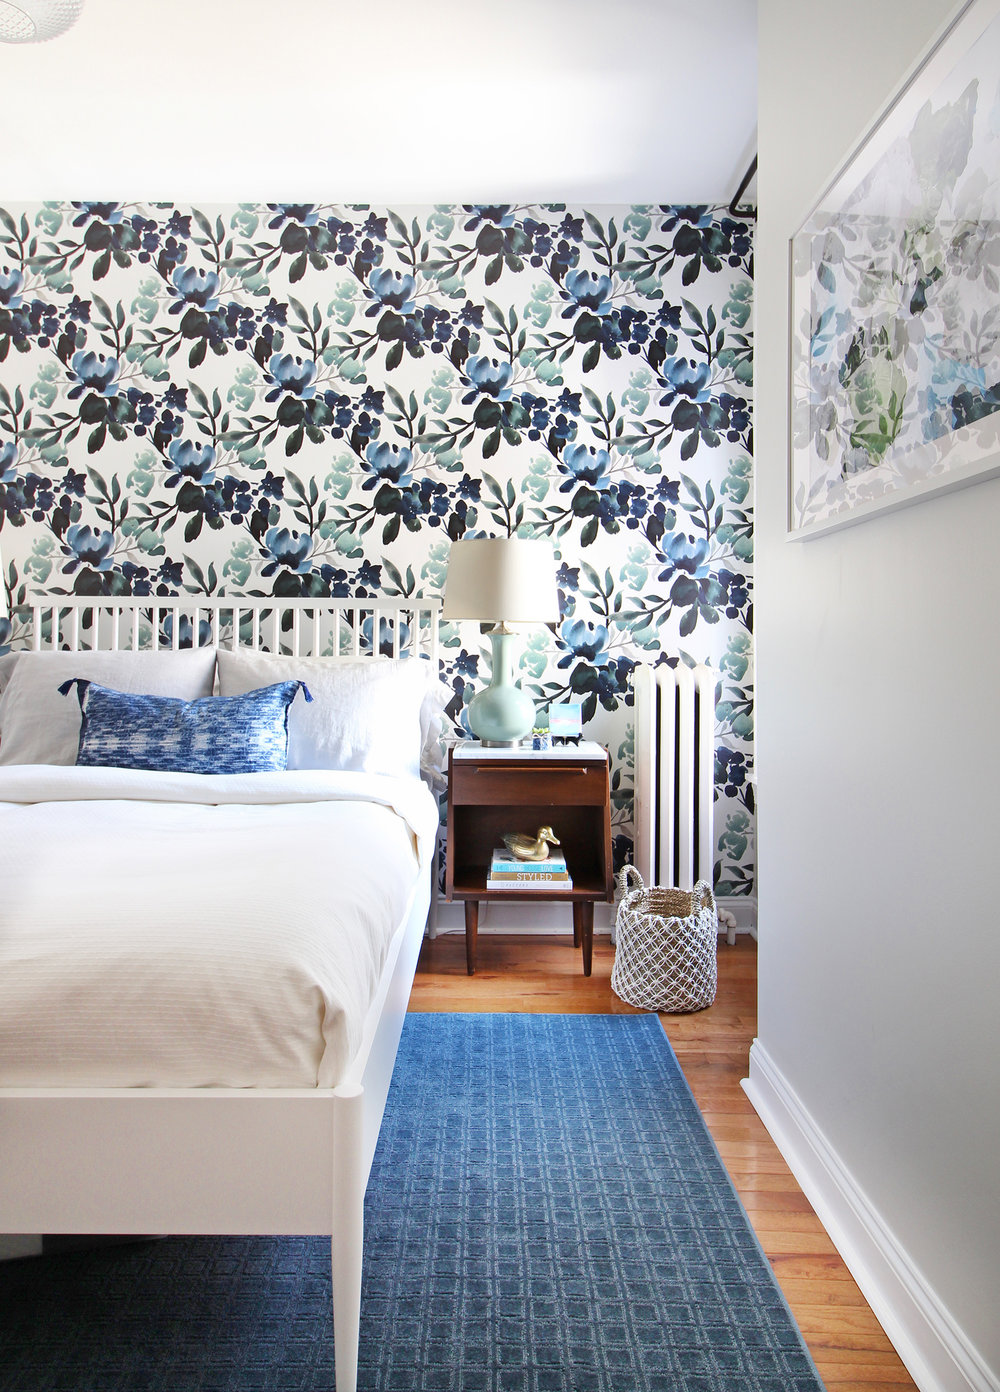 Taking a look back at the top 10 blog posts for Mix & Match Design Company of 2018! Come see what was popular in interior decorating, design tips, e-design projects, and more. One of the posts that made the list? This eclectic modern farmhouse guest room I designed for the One Room Challenge!